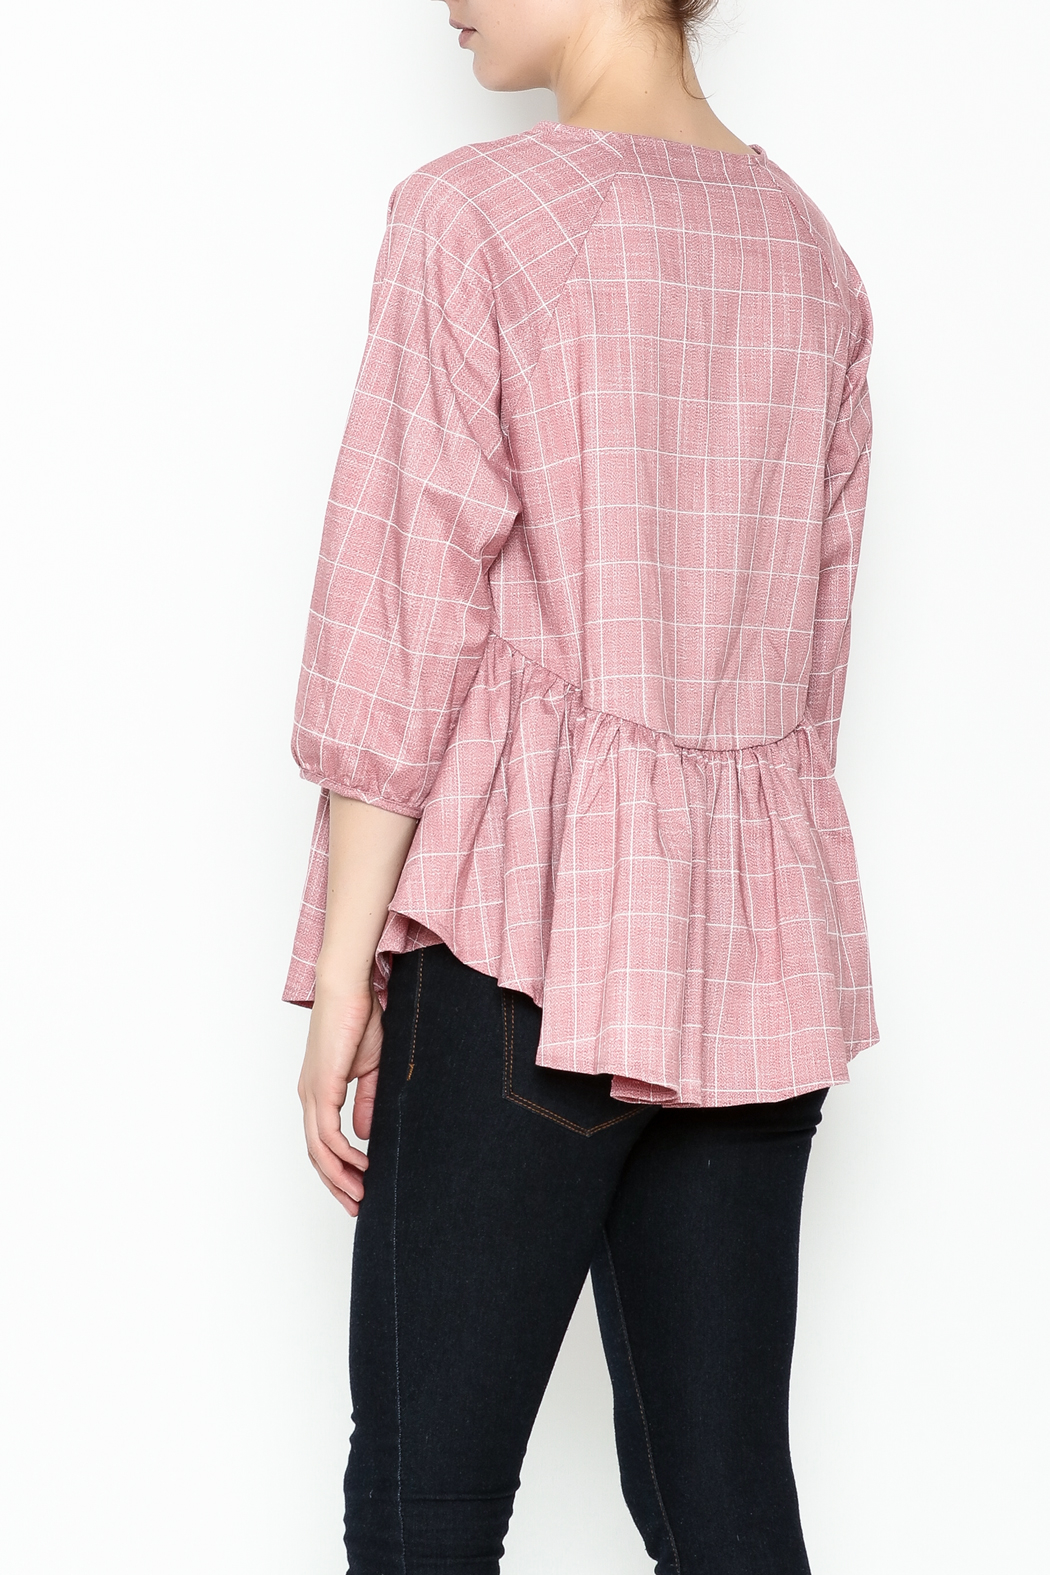 FRNCH Check Peplum Blouse - Back Cropped Image